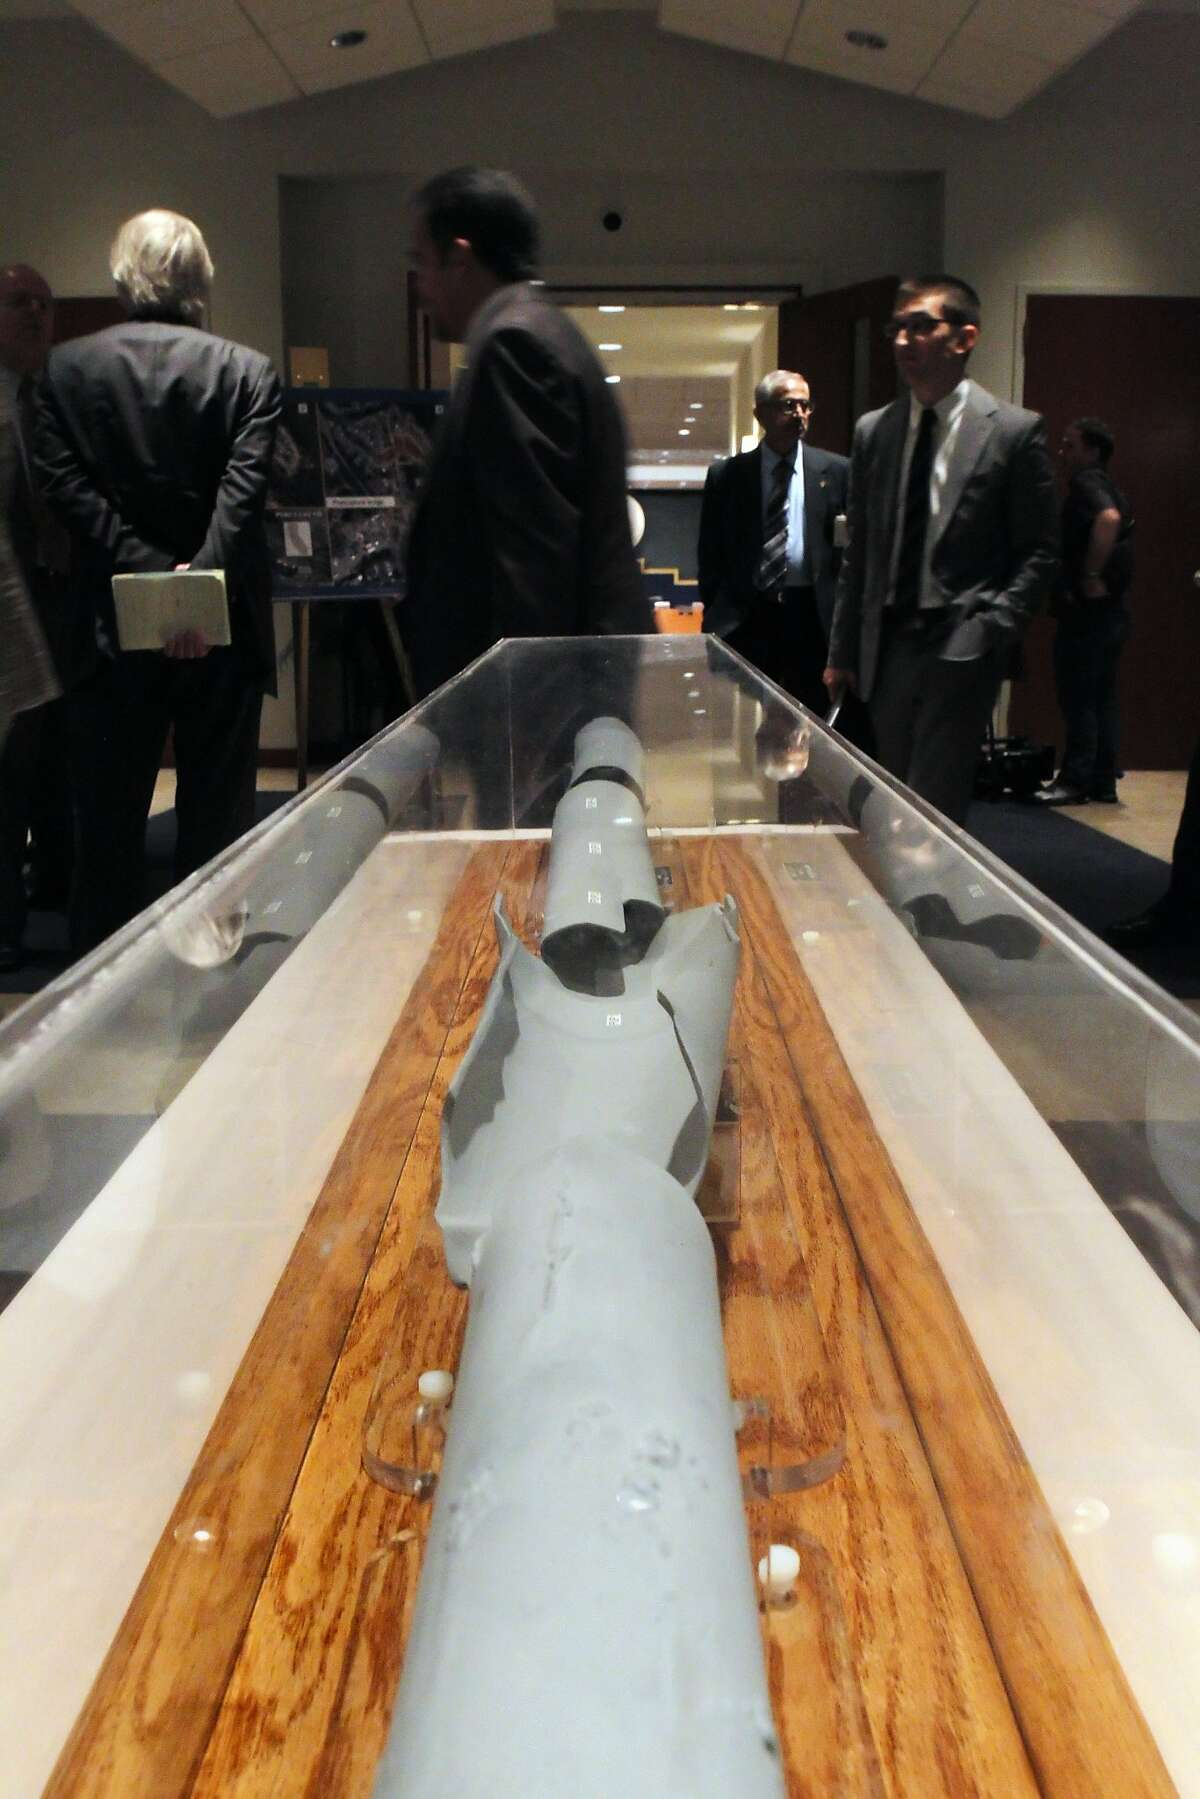 A scale model of the burst pipeline from San Bruno was on exhibit during the NTSB hearings on the 2010 PG&E pipeline blast in Washington DC, on Tuesday, August 30, 2011.